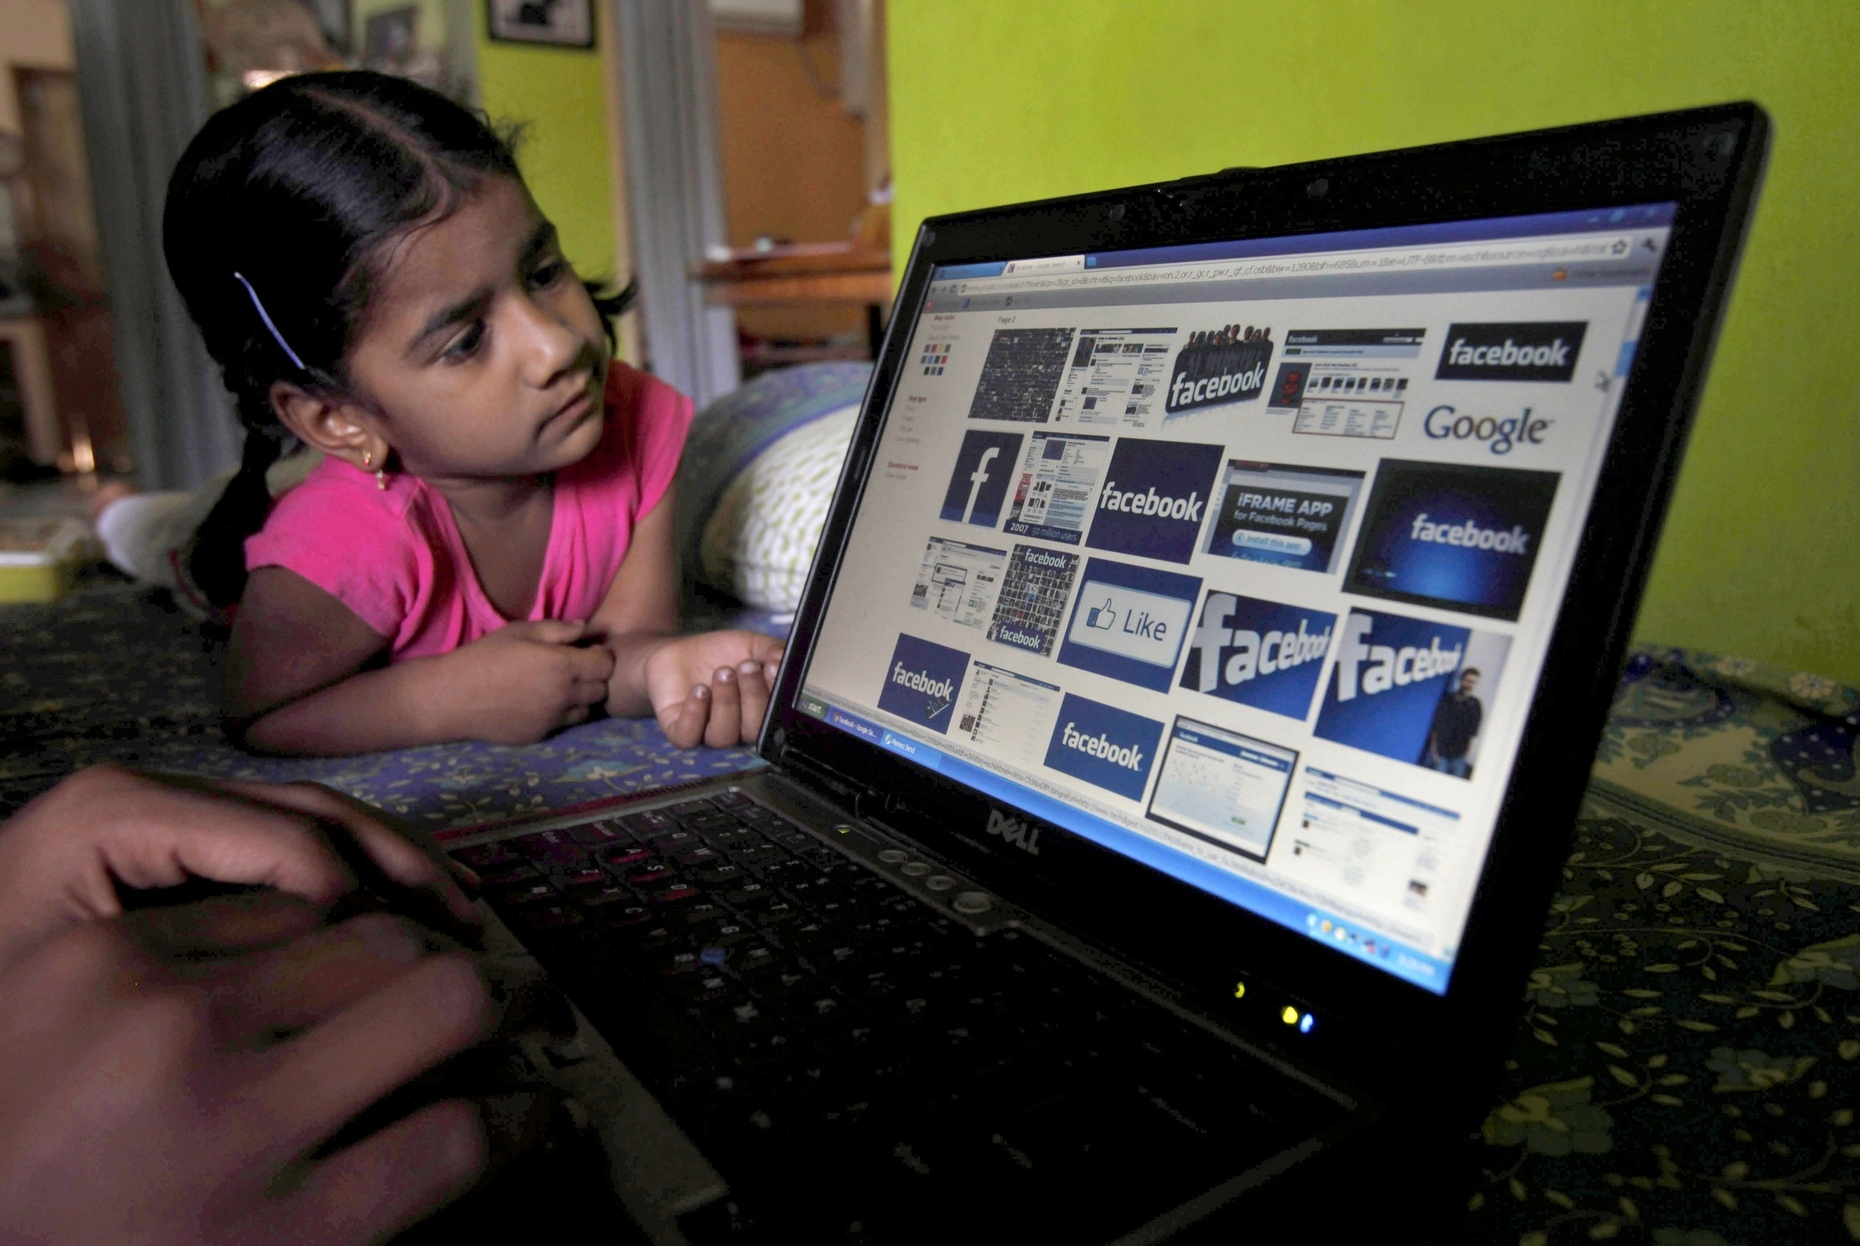 A child looks at a laptop displaying Facebook logos in Hyderabad, India.